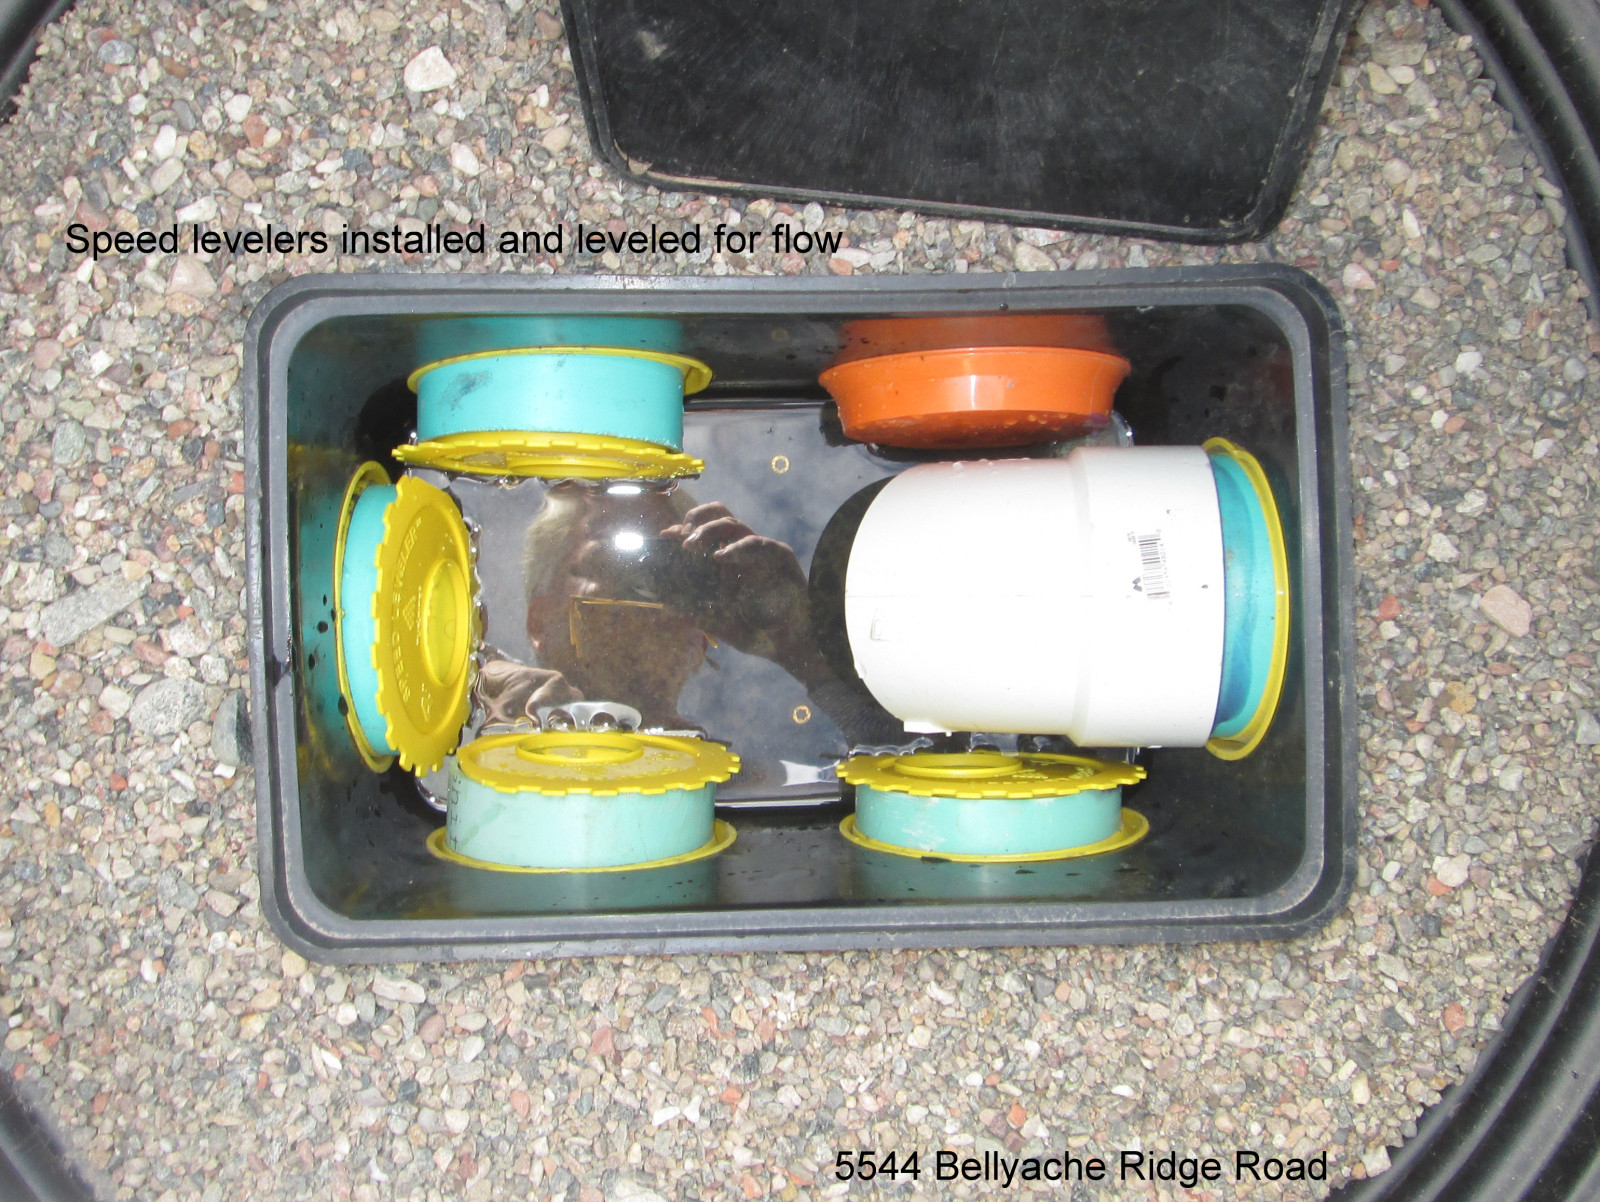 ALL SERVICE SEPTIC TECHNOLOGY - All Service Septic